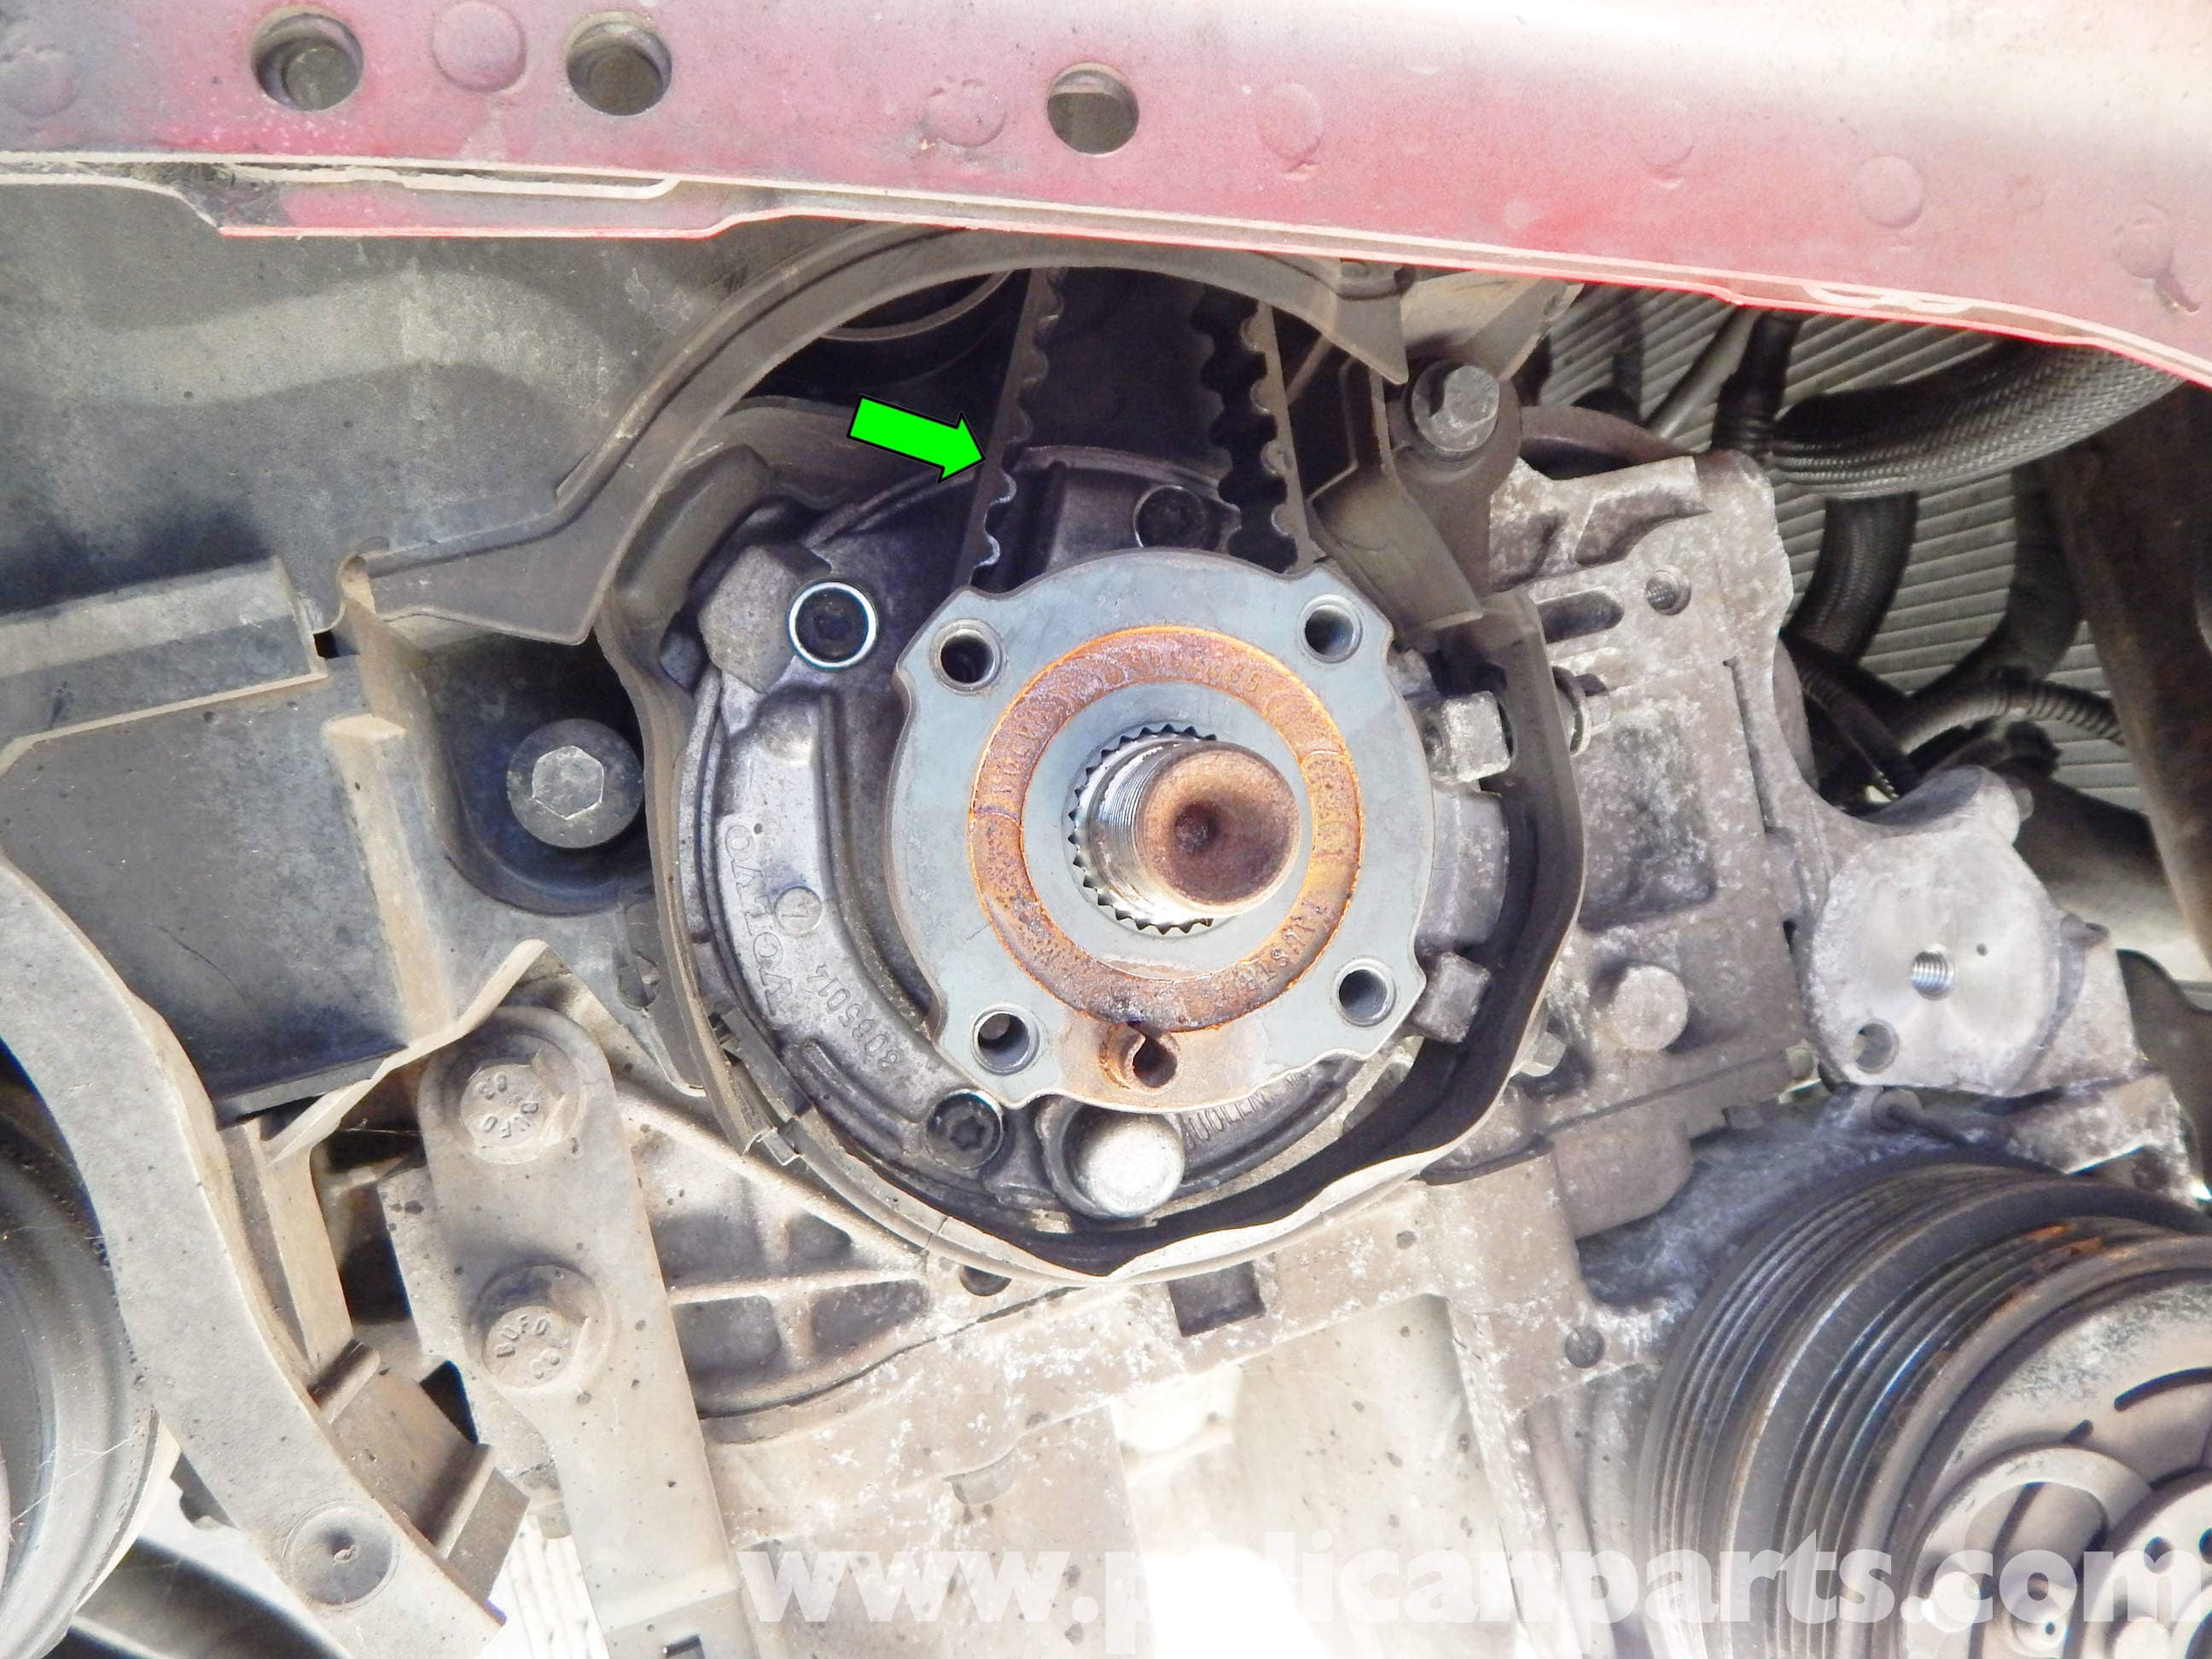 Volvo C30 Timing Belt Replacement 2007 2013 Pelican Parts Diy On 2003 Saab Large Image Extra